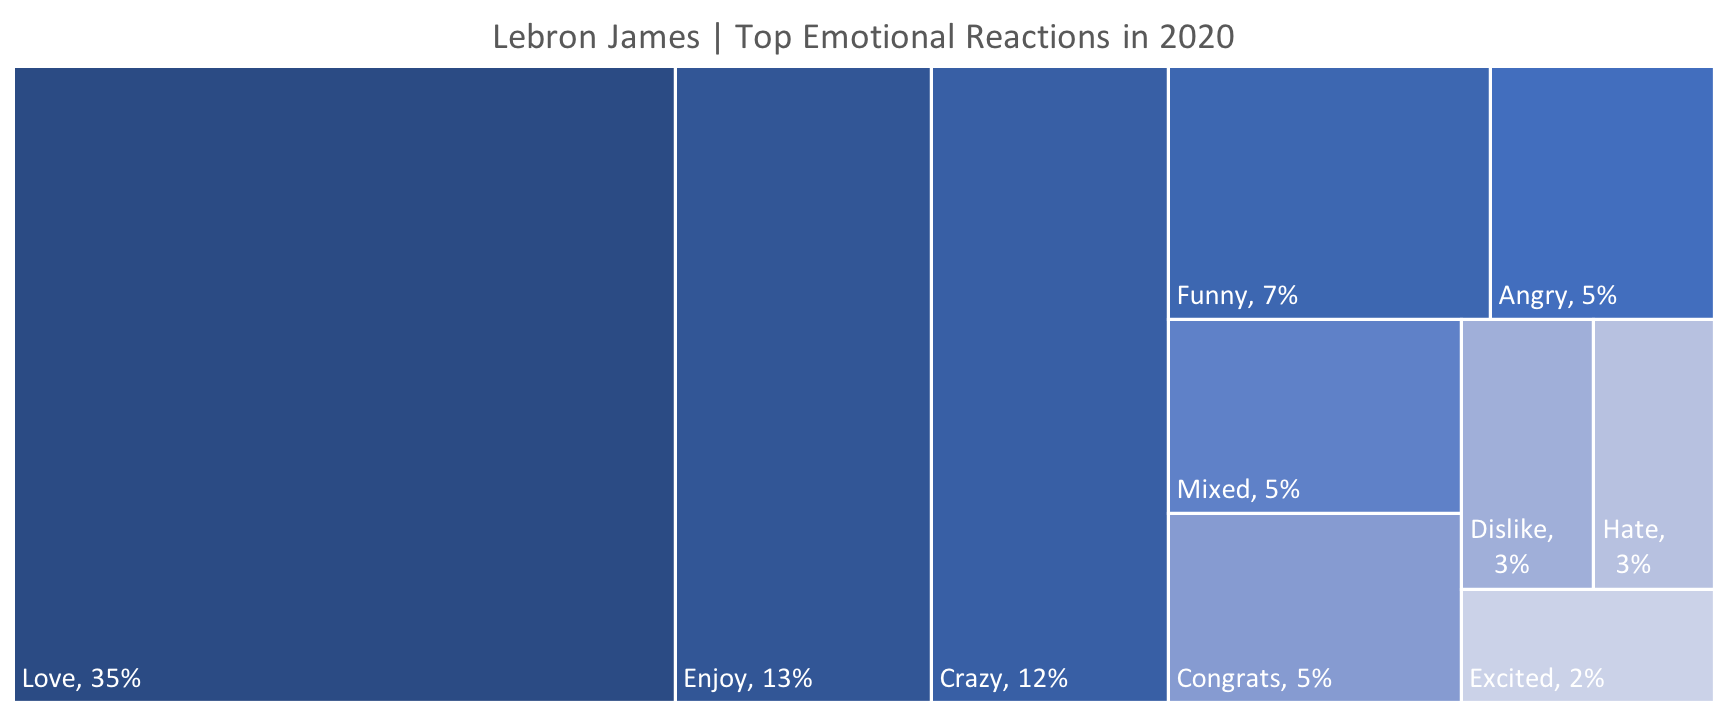 Source: Canvs Explore, Tweets driven by the Lebron James in 2020